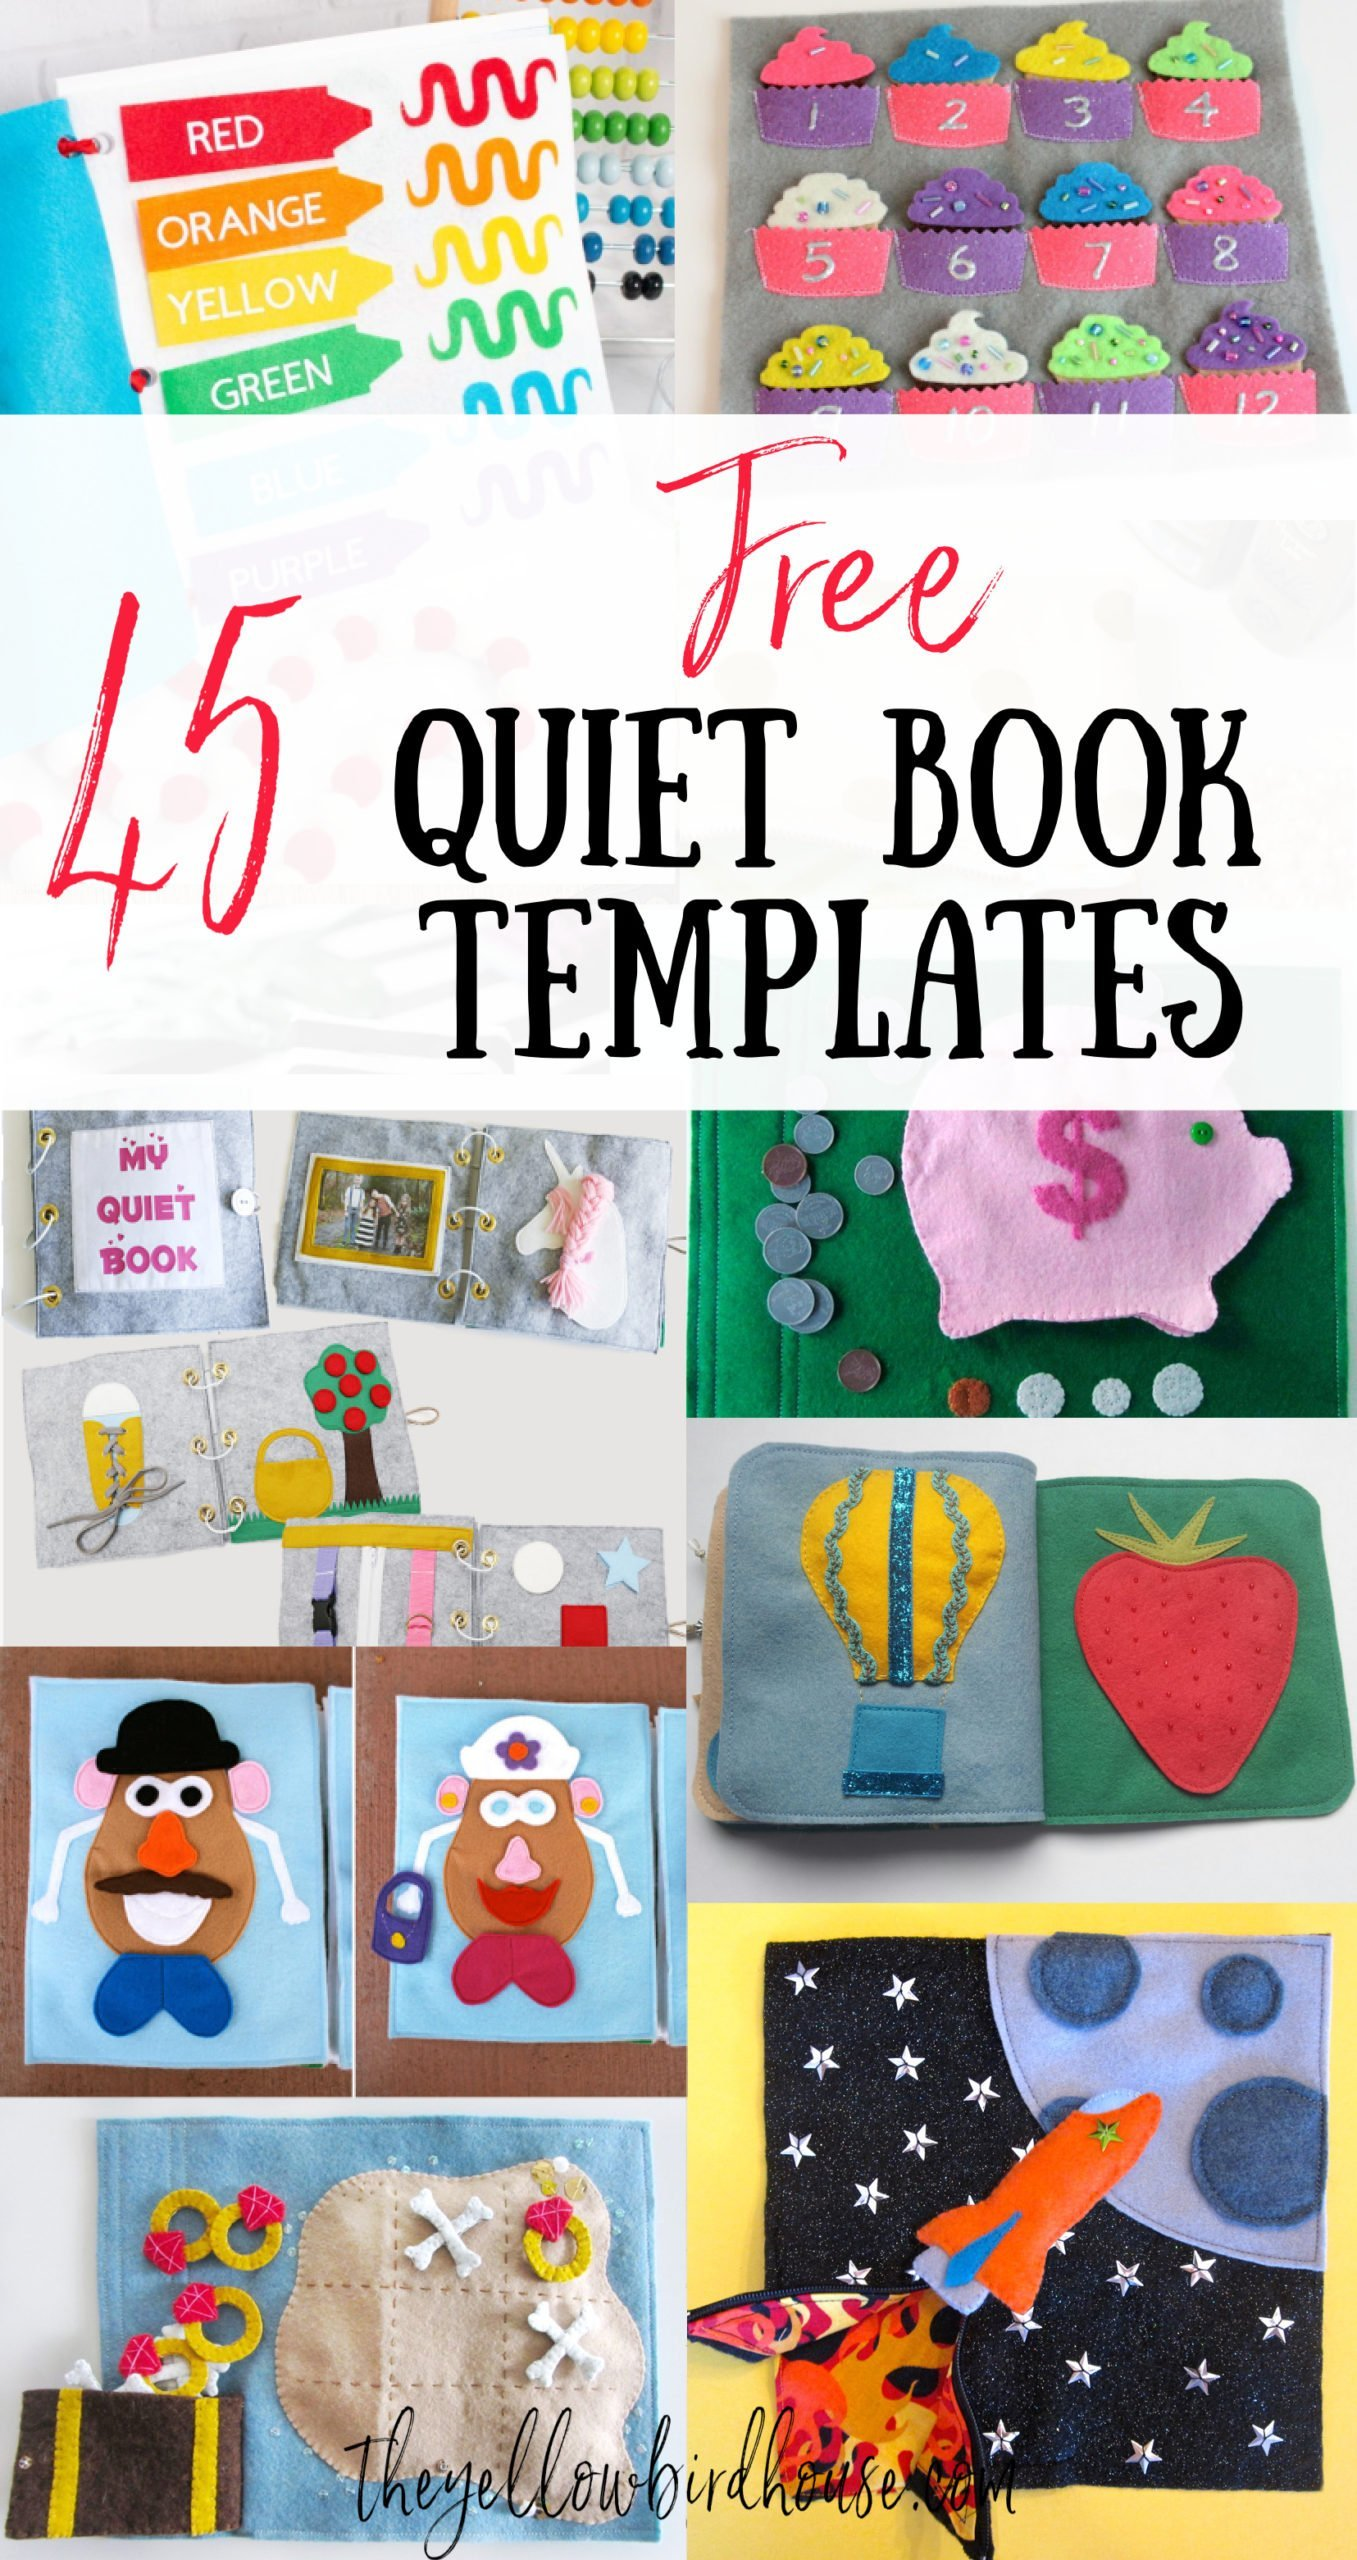 45 Free Quiet Book Templates Pages The Yellow Birdhouse